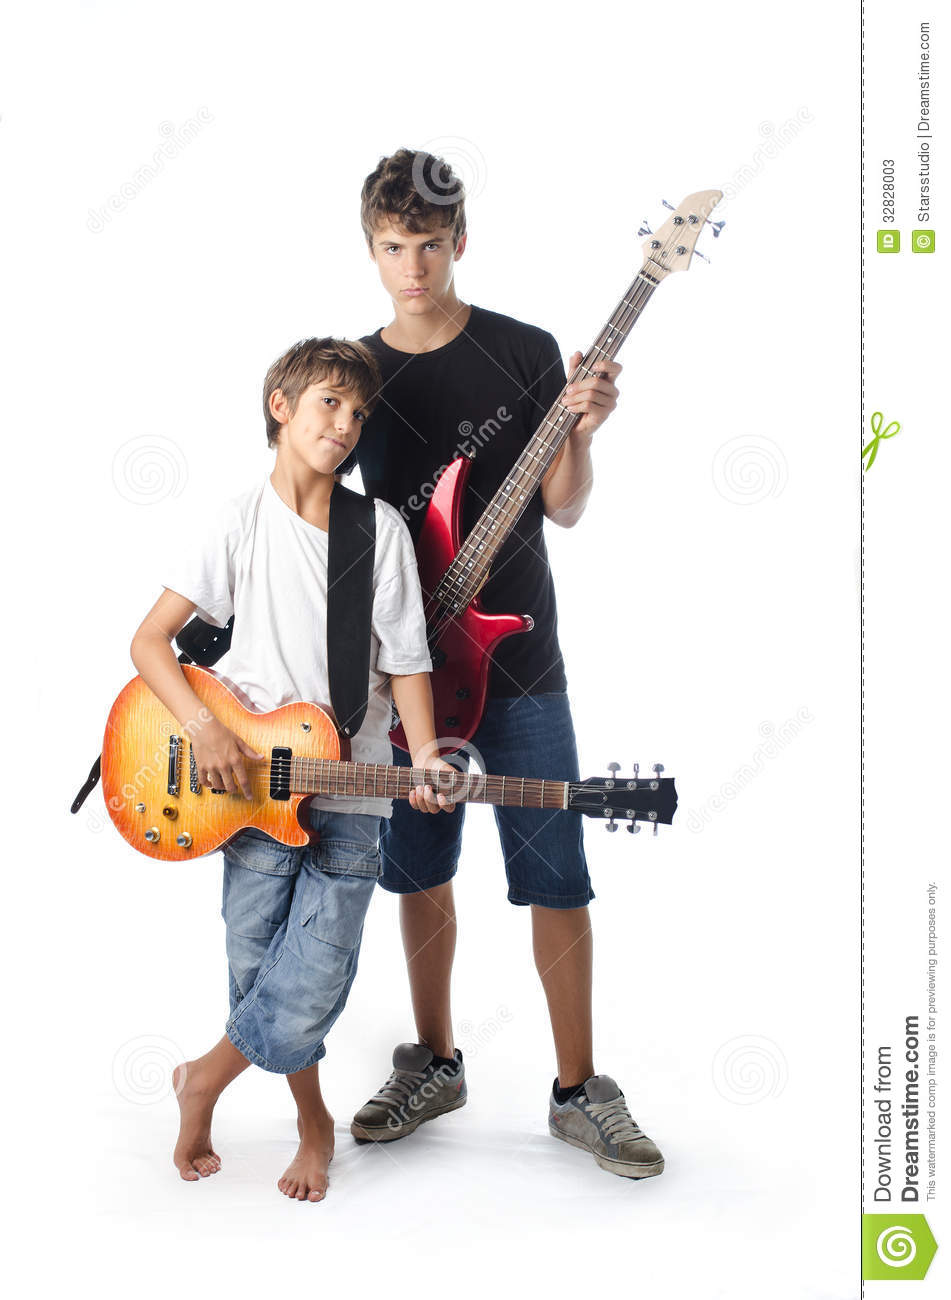 Child and teenager with guitar and bass